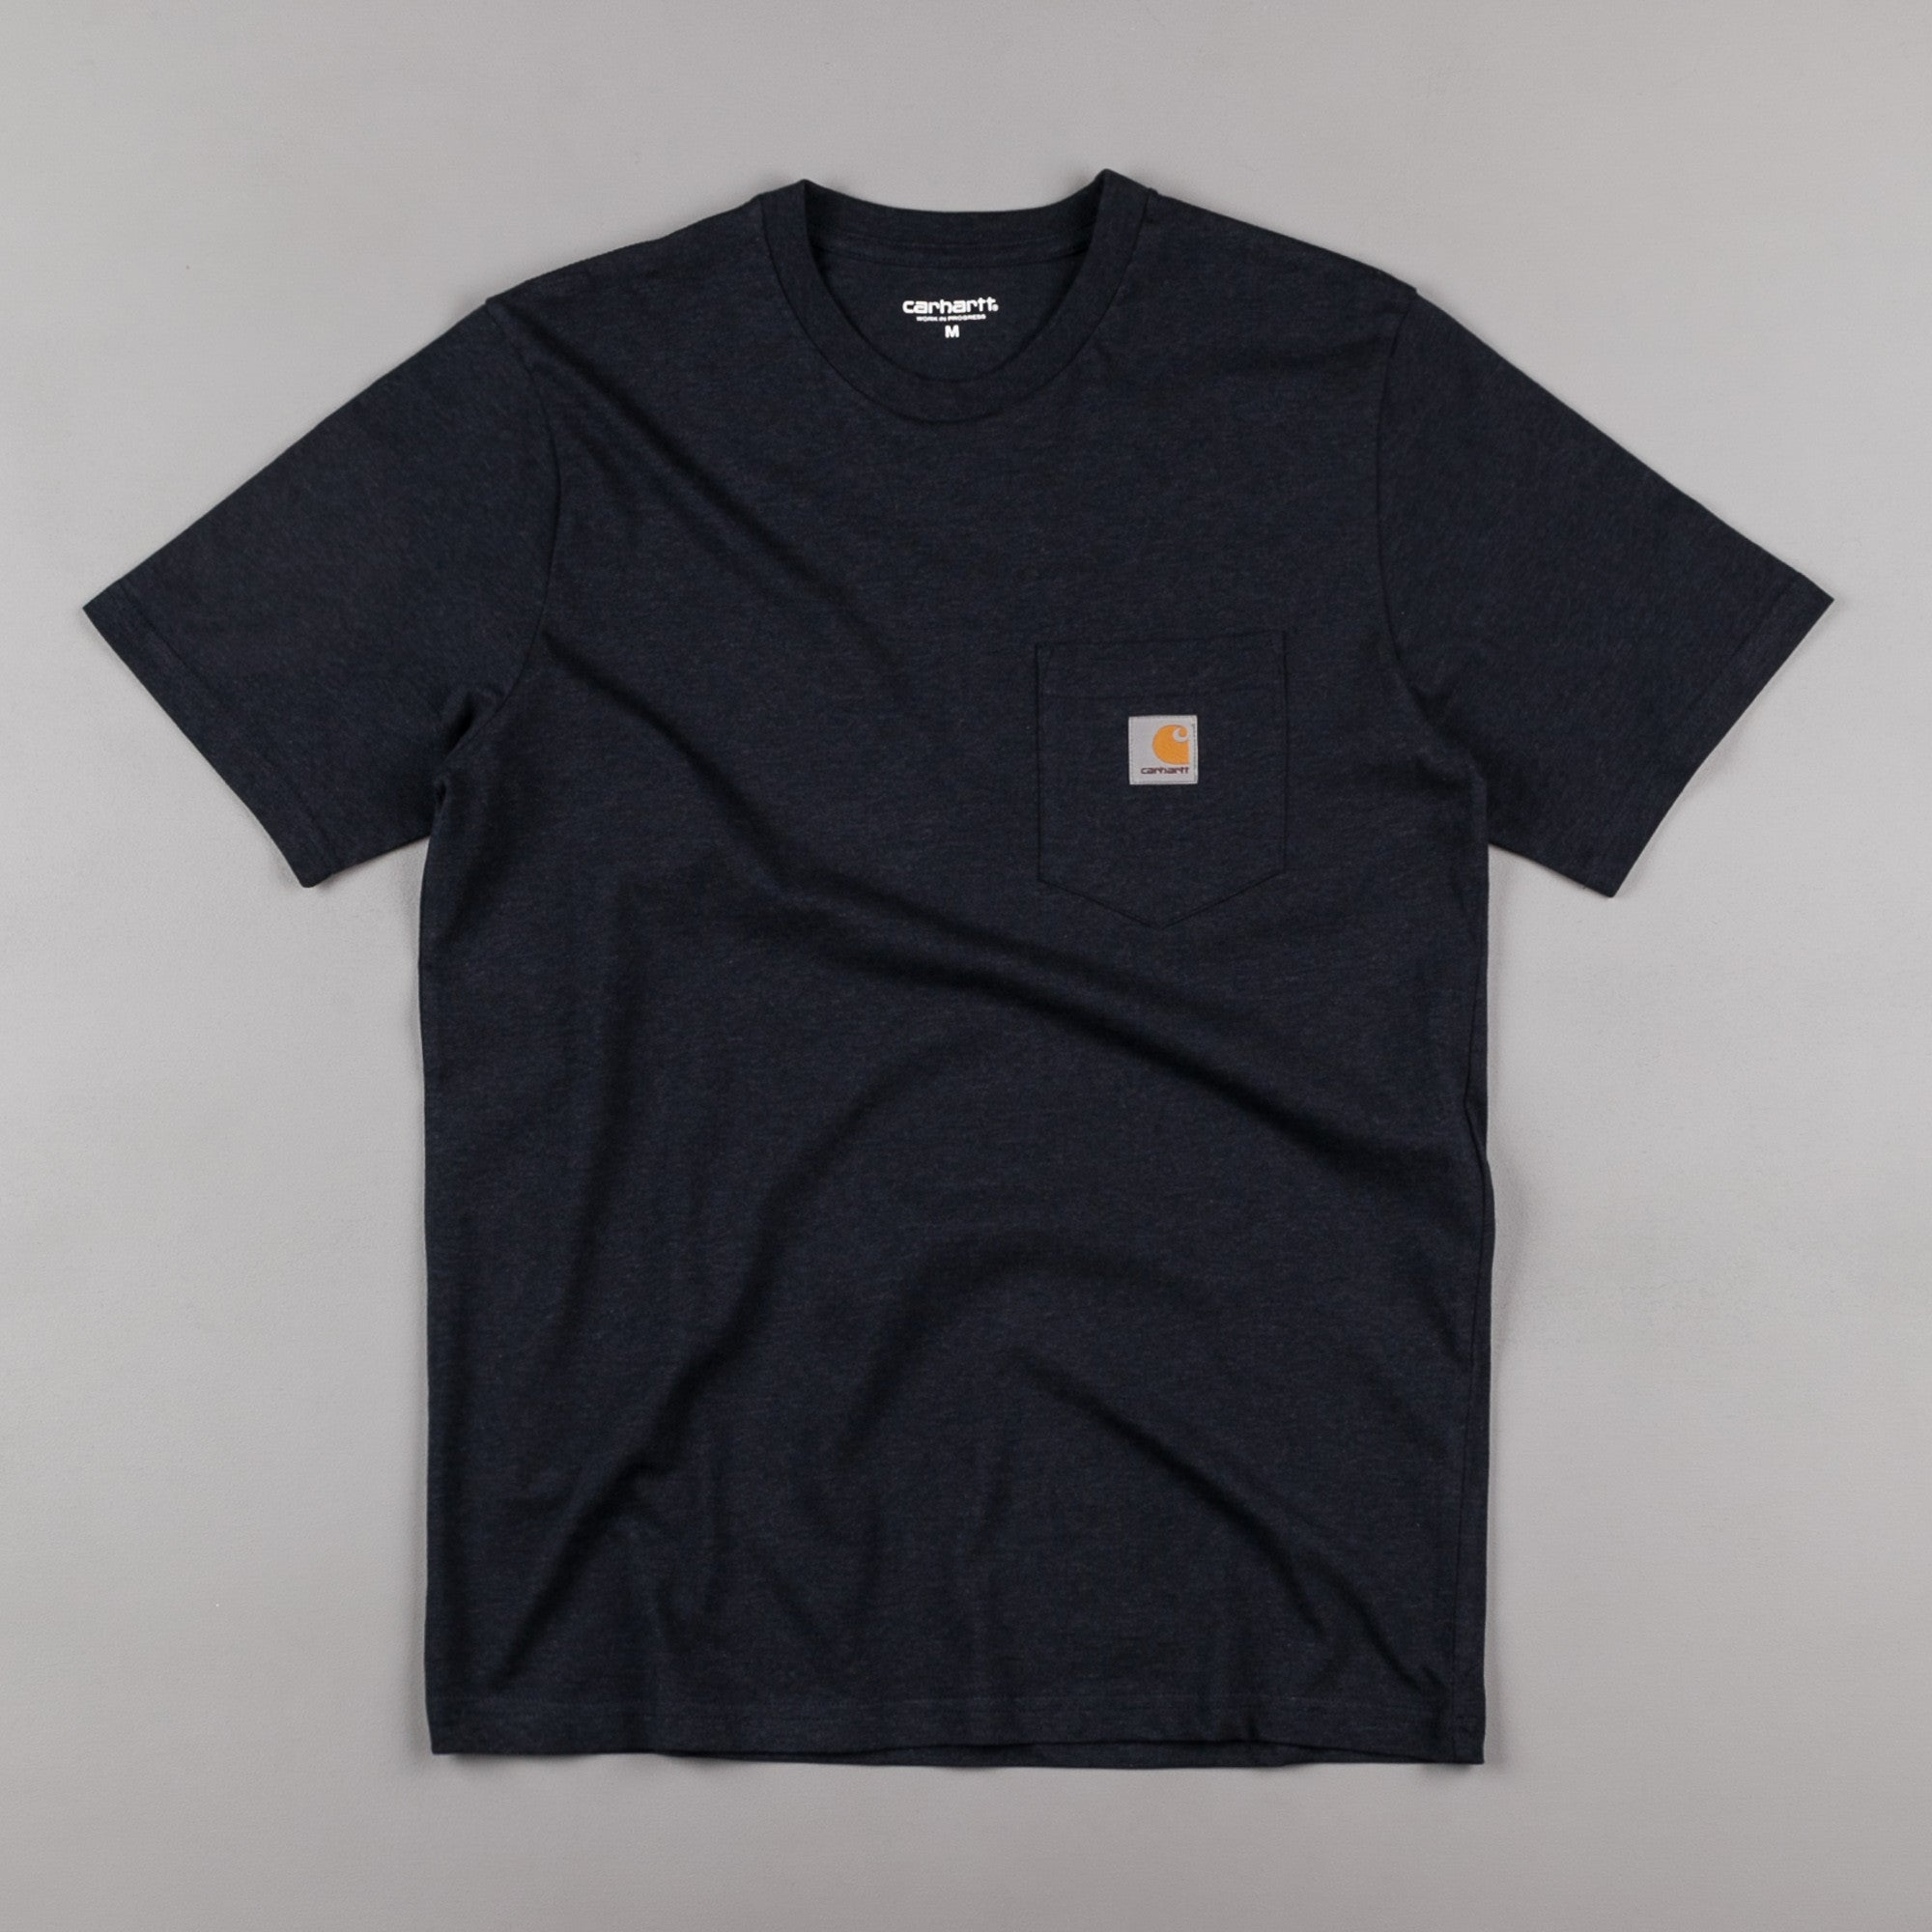 Carhartt Pocket T-Shirt - Navy Heather